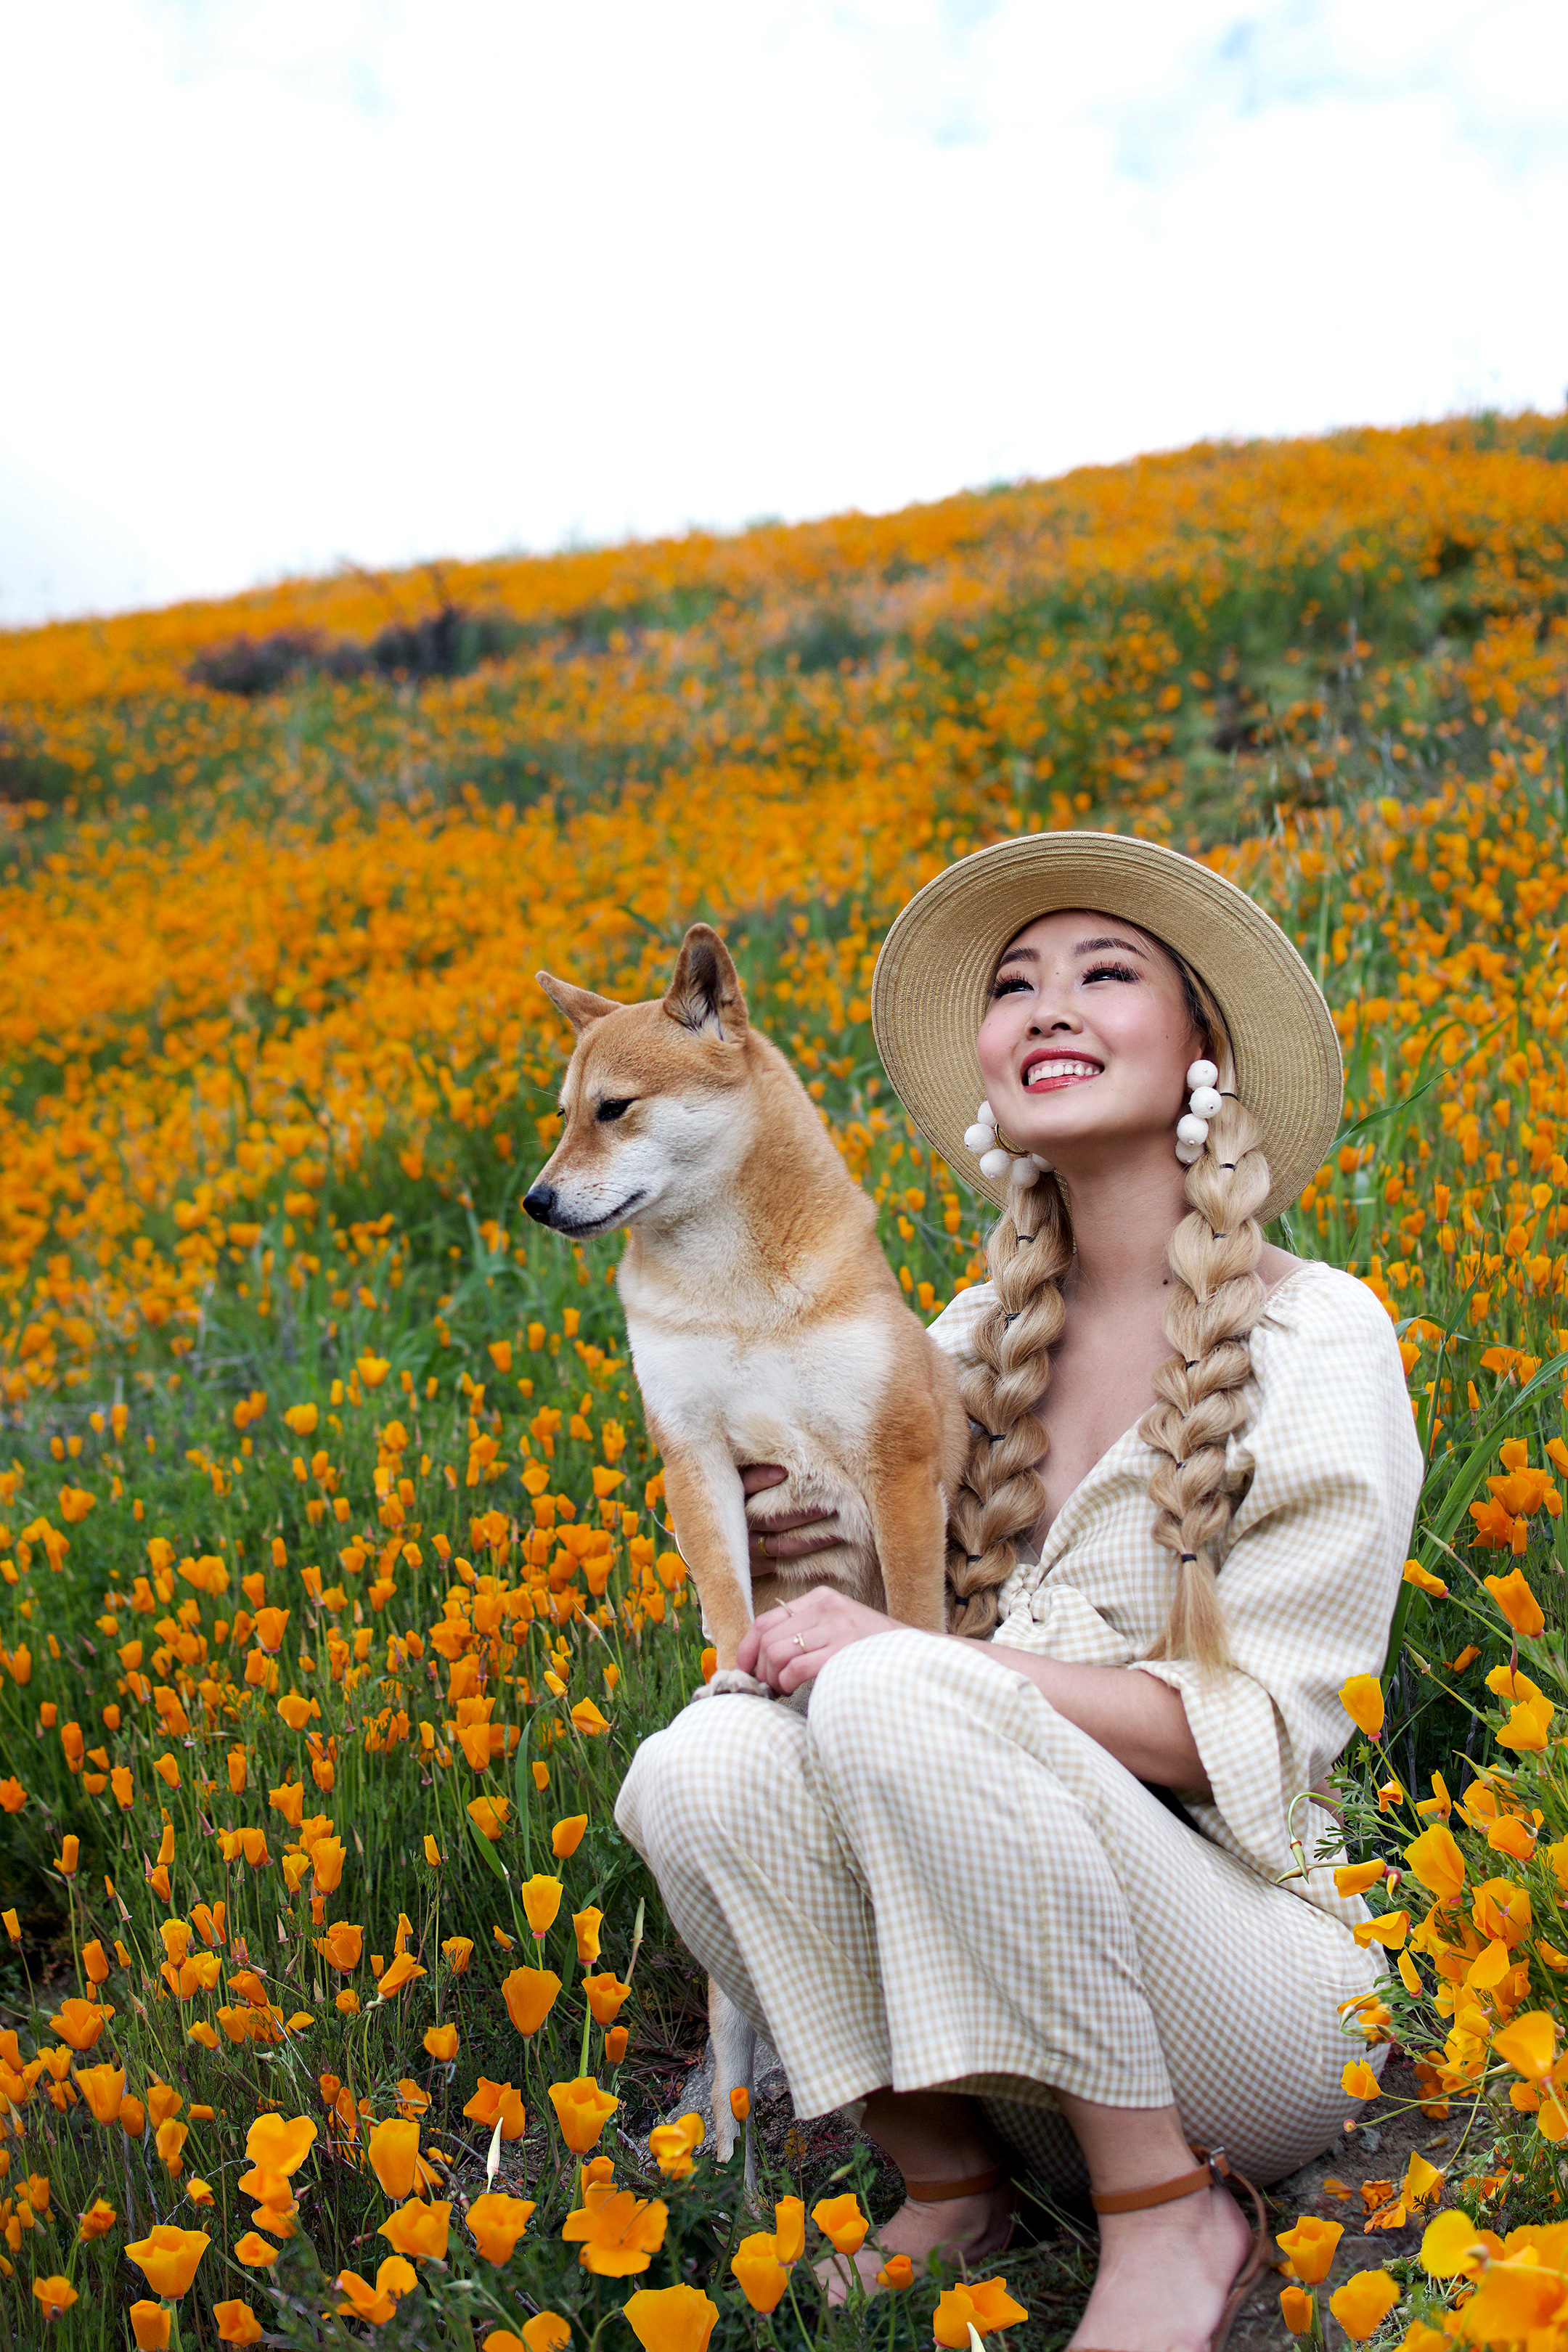 Happy spring! LA had the coldest and wettest winter I've experienced in years, but thanks to all the rain nature gifted us with a sea of blossoms all over Southern California! This year I got to enjoy the wildflower super bloom at  Walker Canyon Poppy Fields , where the mountains were gloriously ablaze in a blanket of orange blooms! #springoutfit #walkercanyonpoppyfields #superbloom #springfashion #ginghamfashion